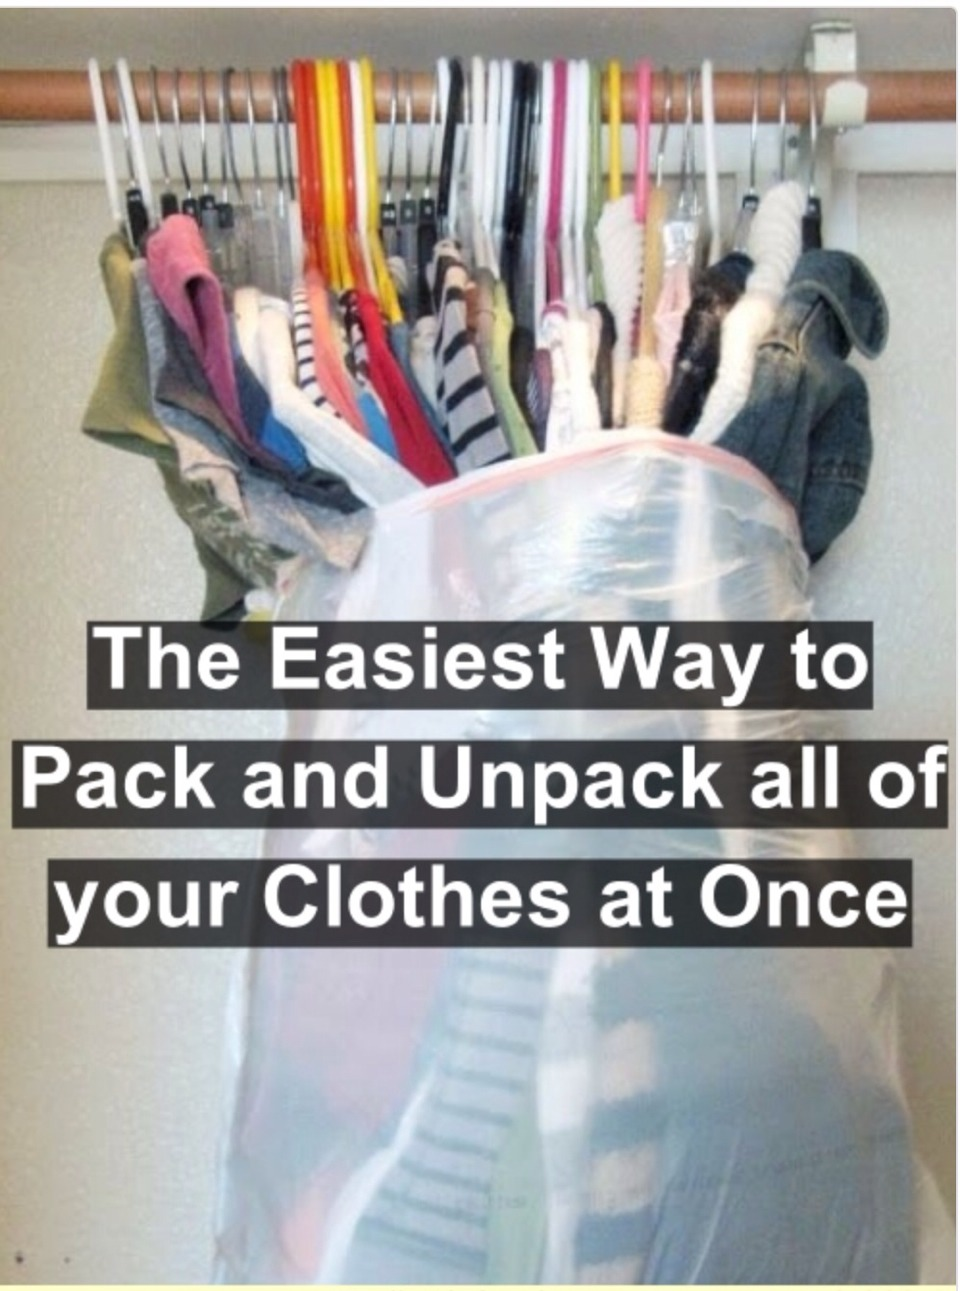 Moving Pack Your Clothes Easy With This One Swipe Method